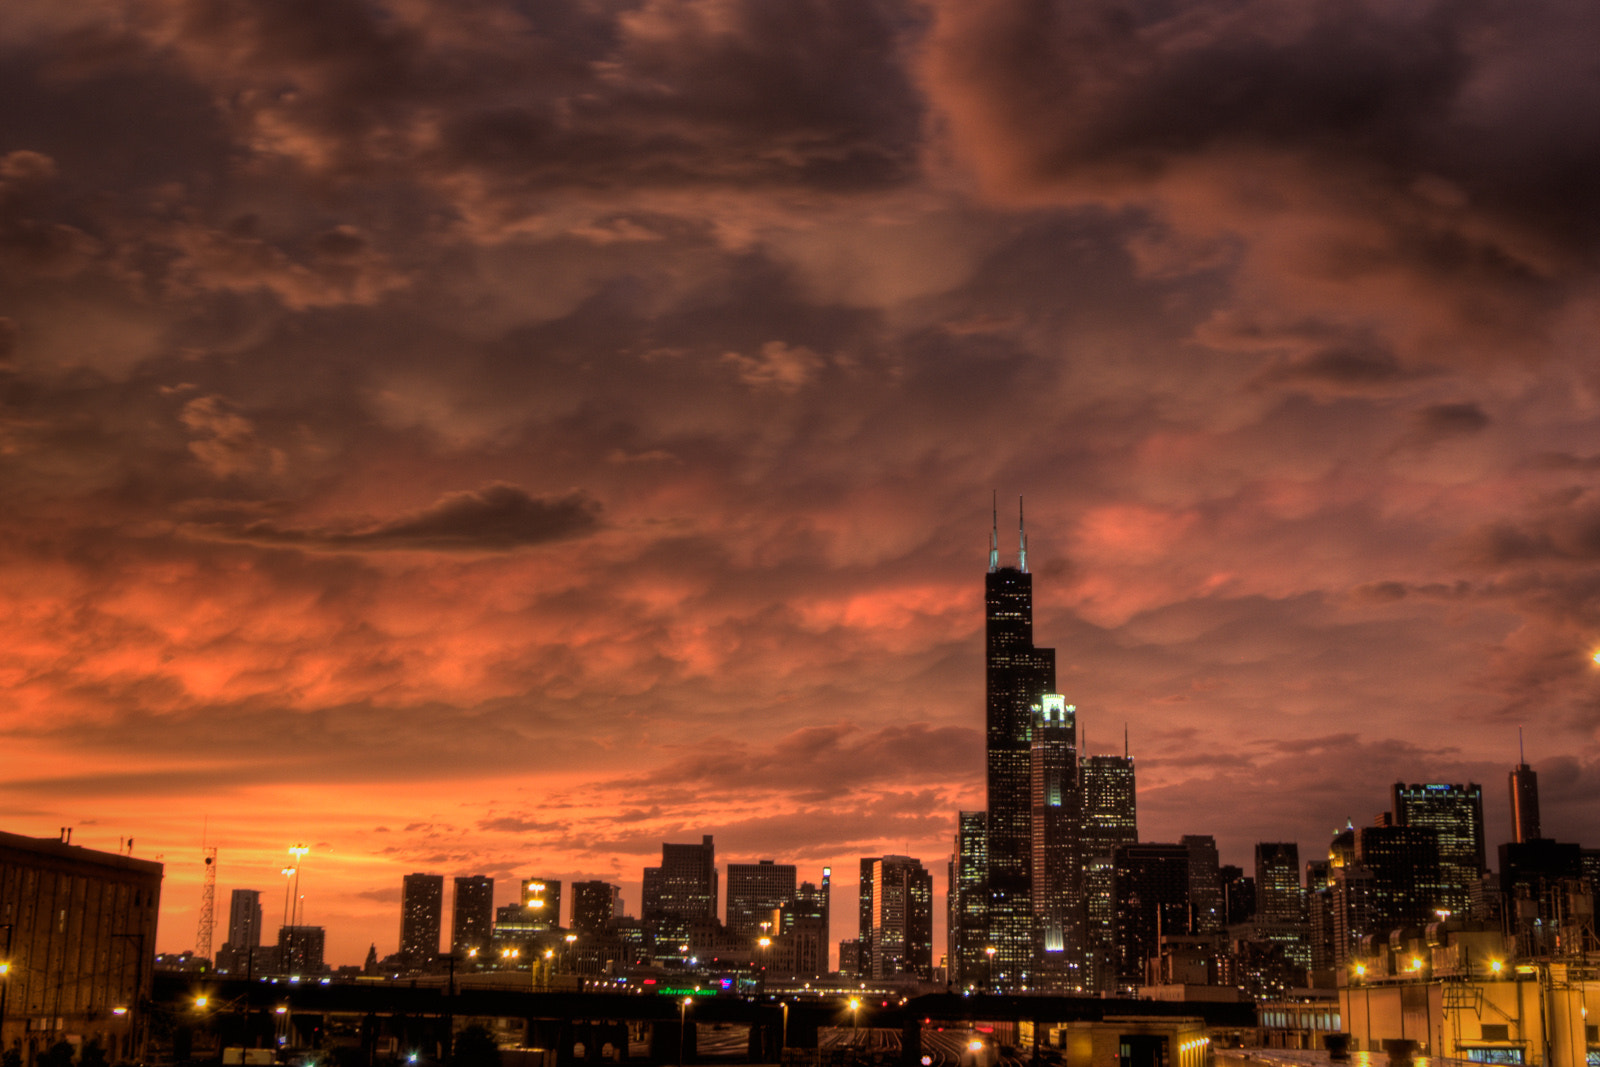 Photograph Chicago from the South by Jorge Barrera on 500px